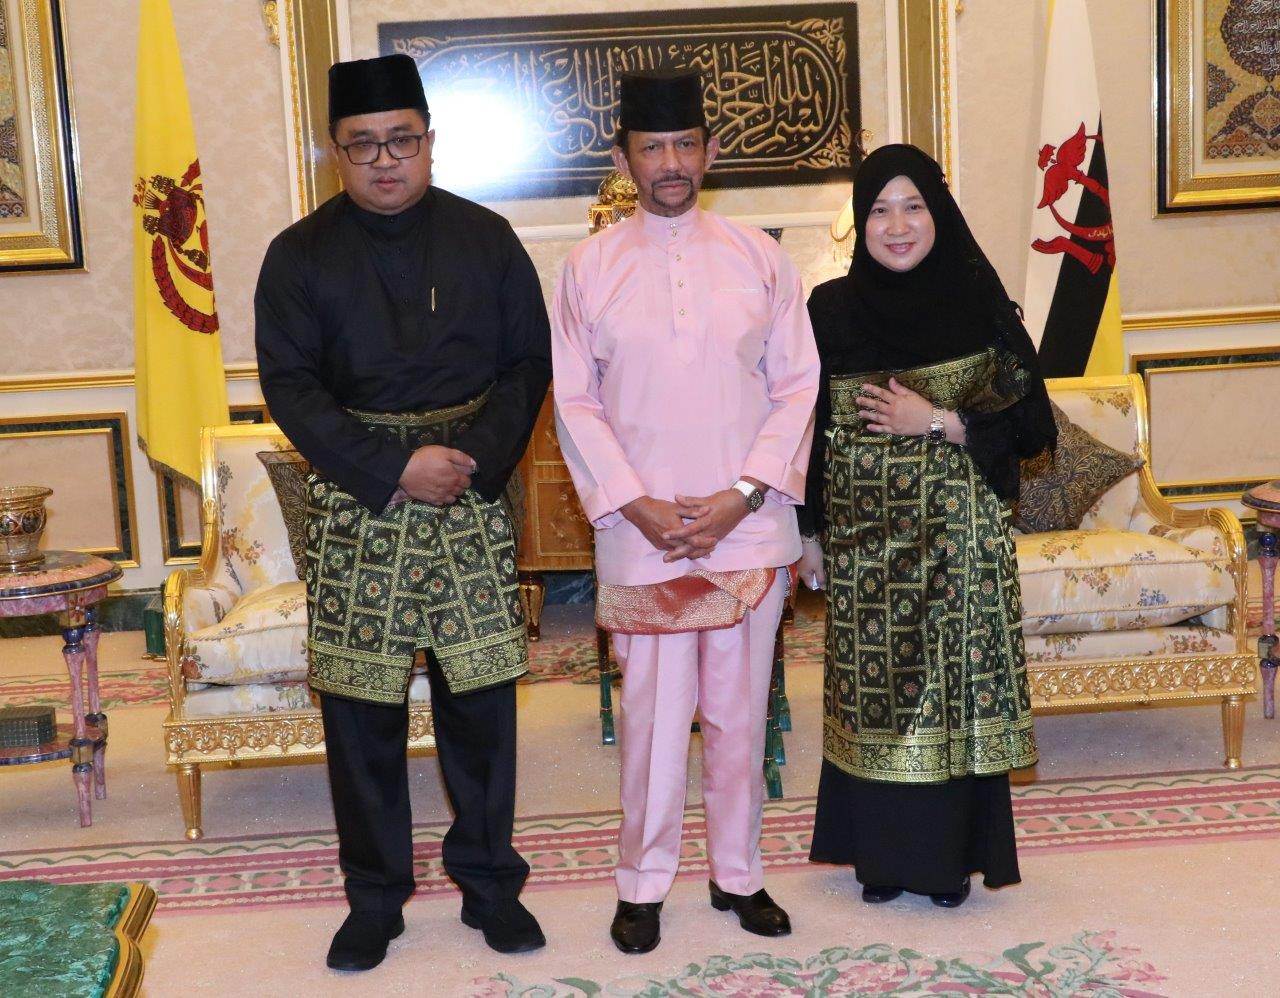 HIS MAJESTY THE SULTAN AND YANG DI-PERTUAN OF BRUNEI DARUSSALAM PRESENTS AND RECEIVES LETTERS OF CREDENCE FOR THE NEWLY APPOINTED ENVOYS